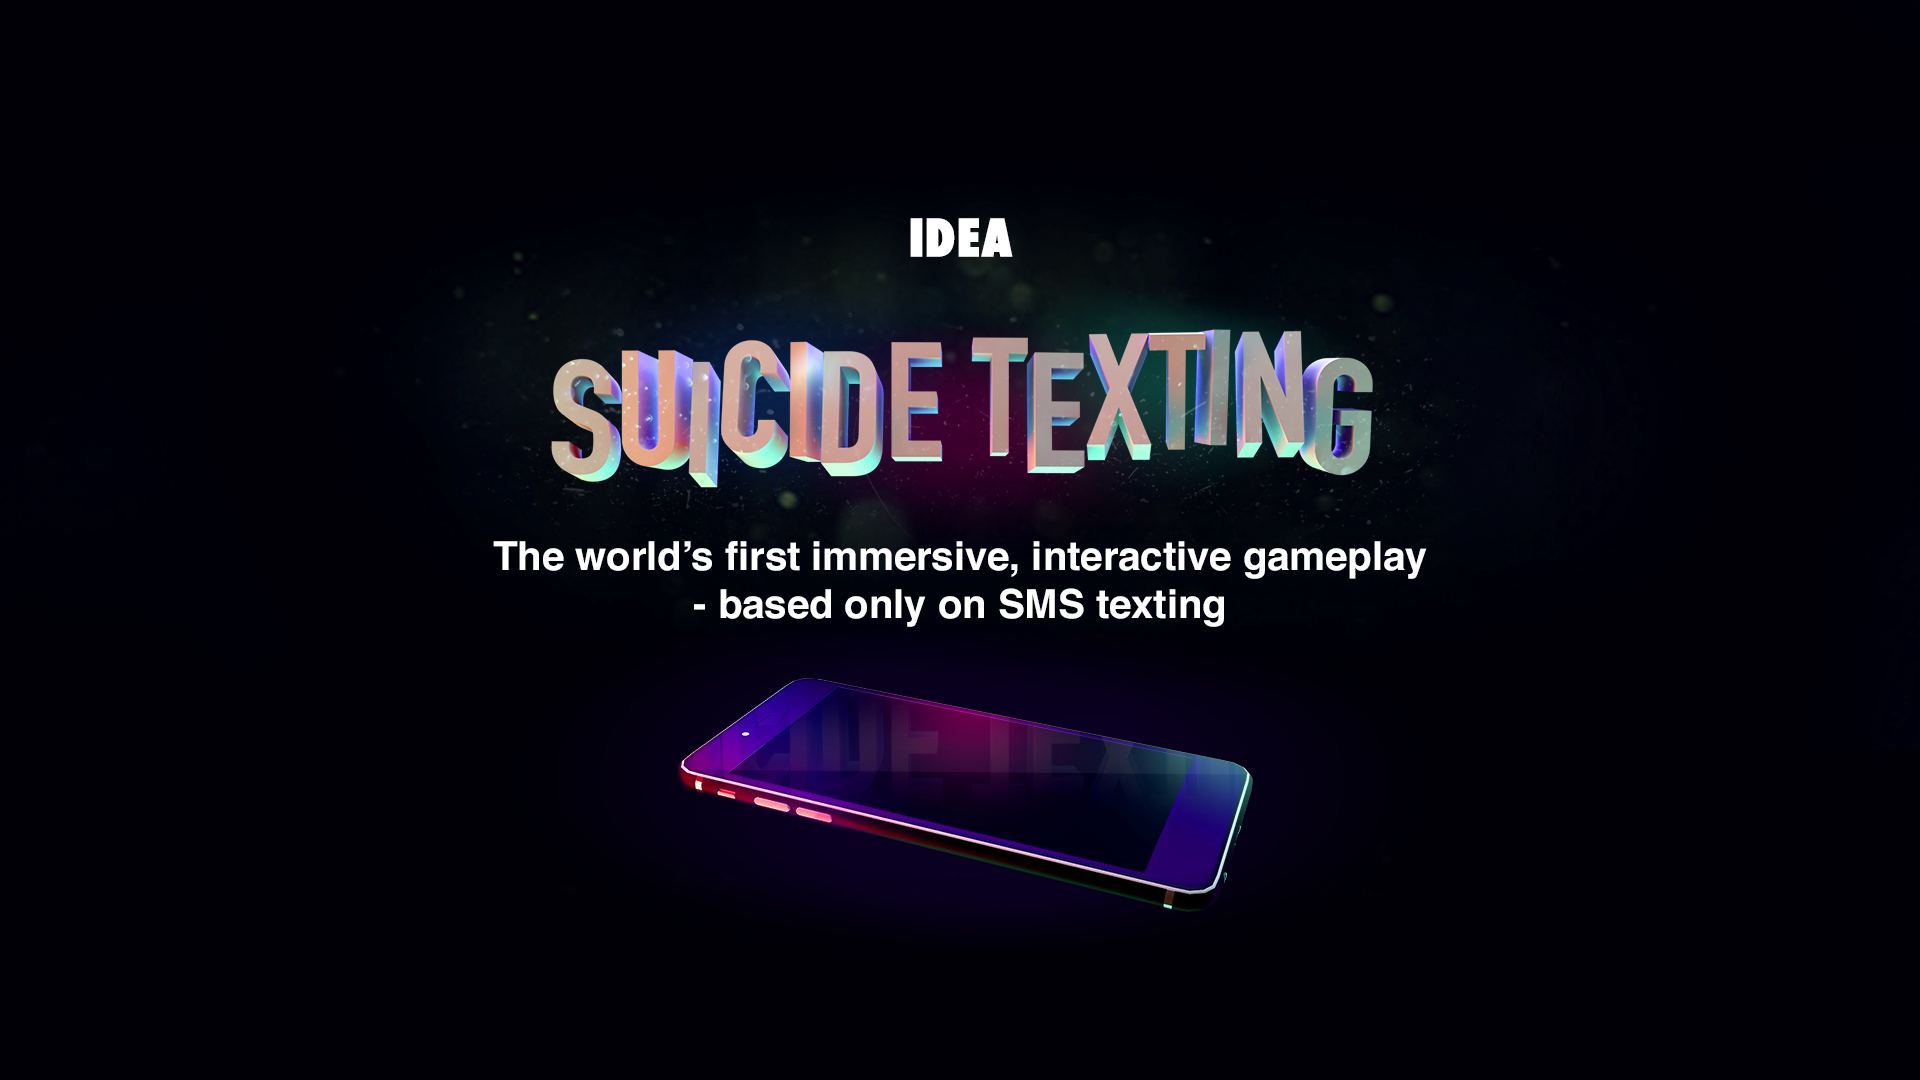 SUICIDE_TEXTING_TITLE